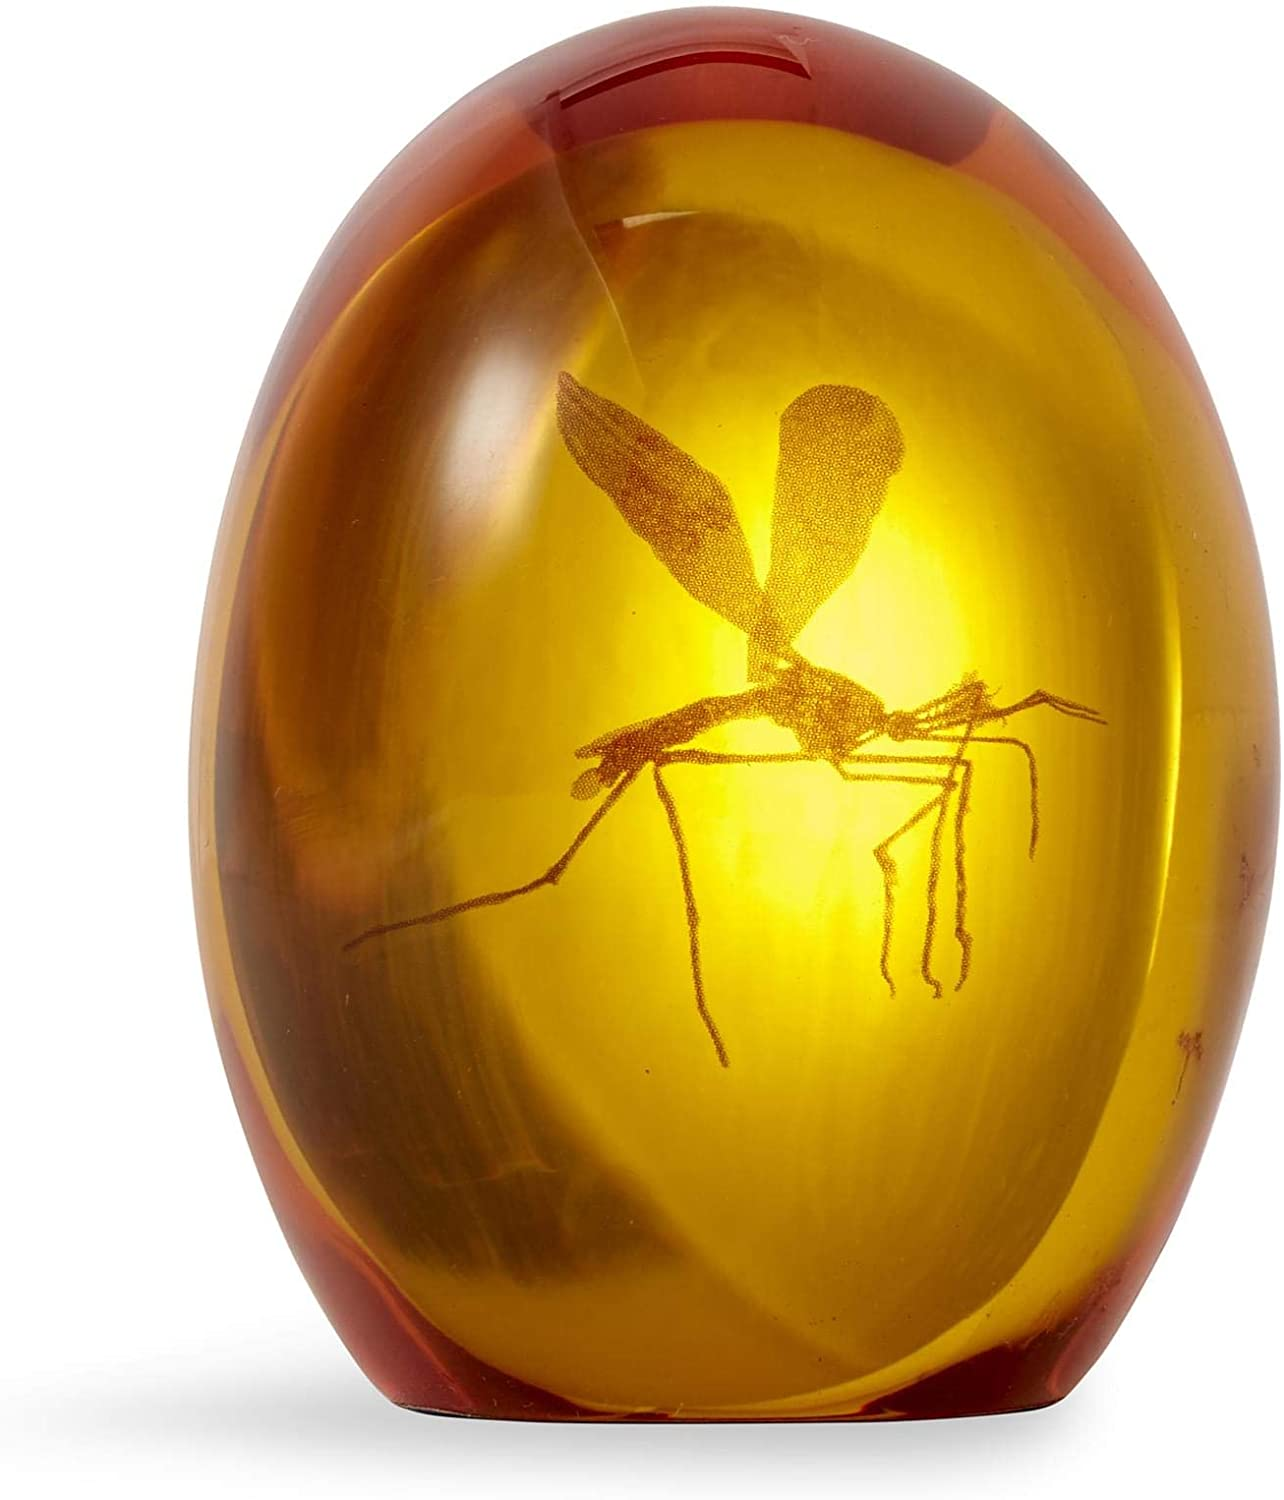 Jurassic Park Mosquito in Amber Resin Prop Replica | Official Jurassic Park Collectible Paper Weight | Measures 3 Inches Tall